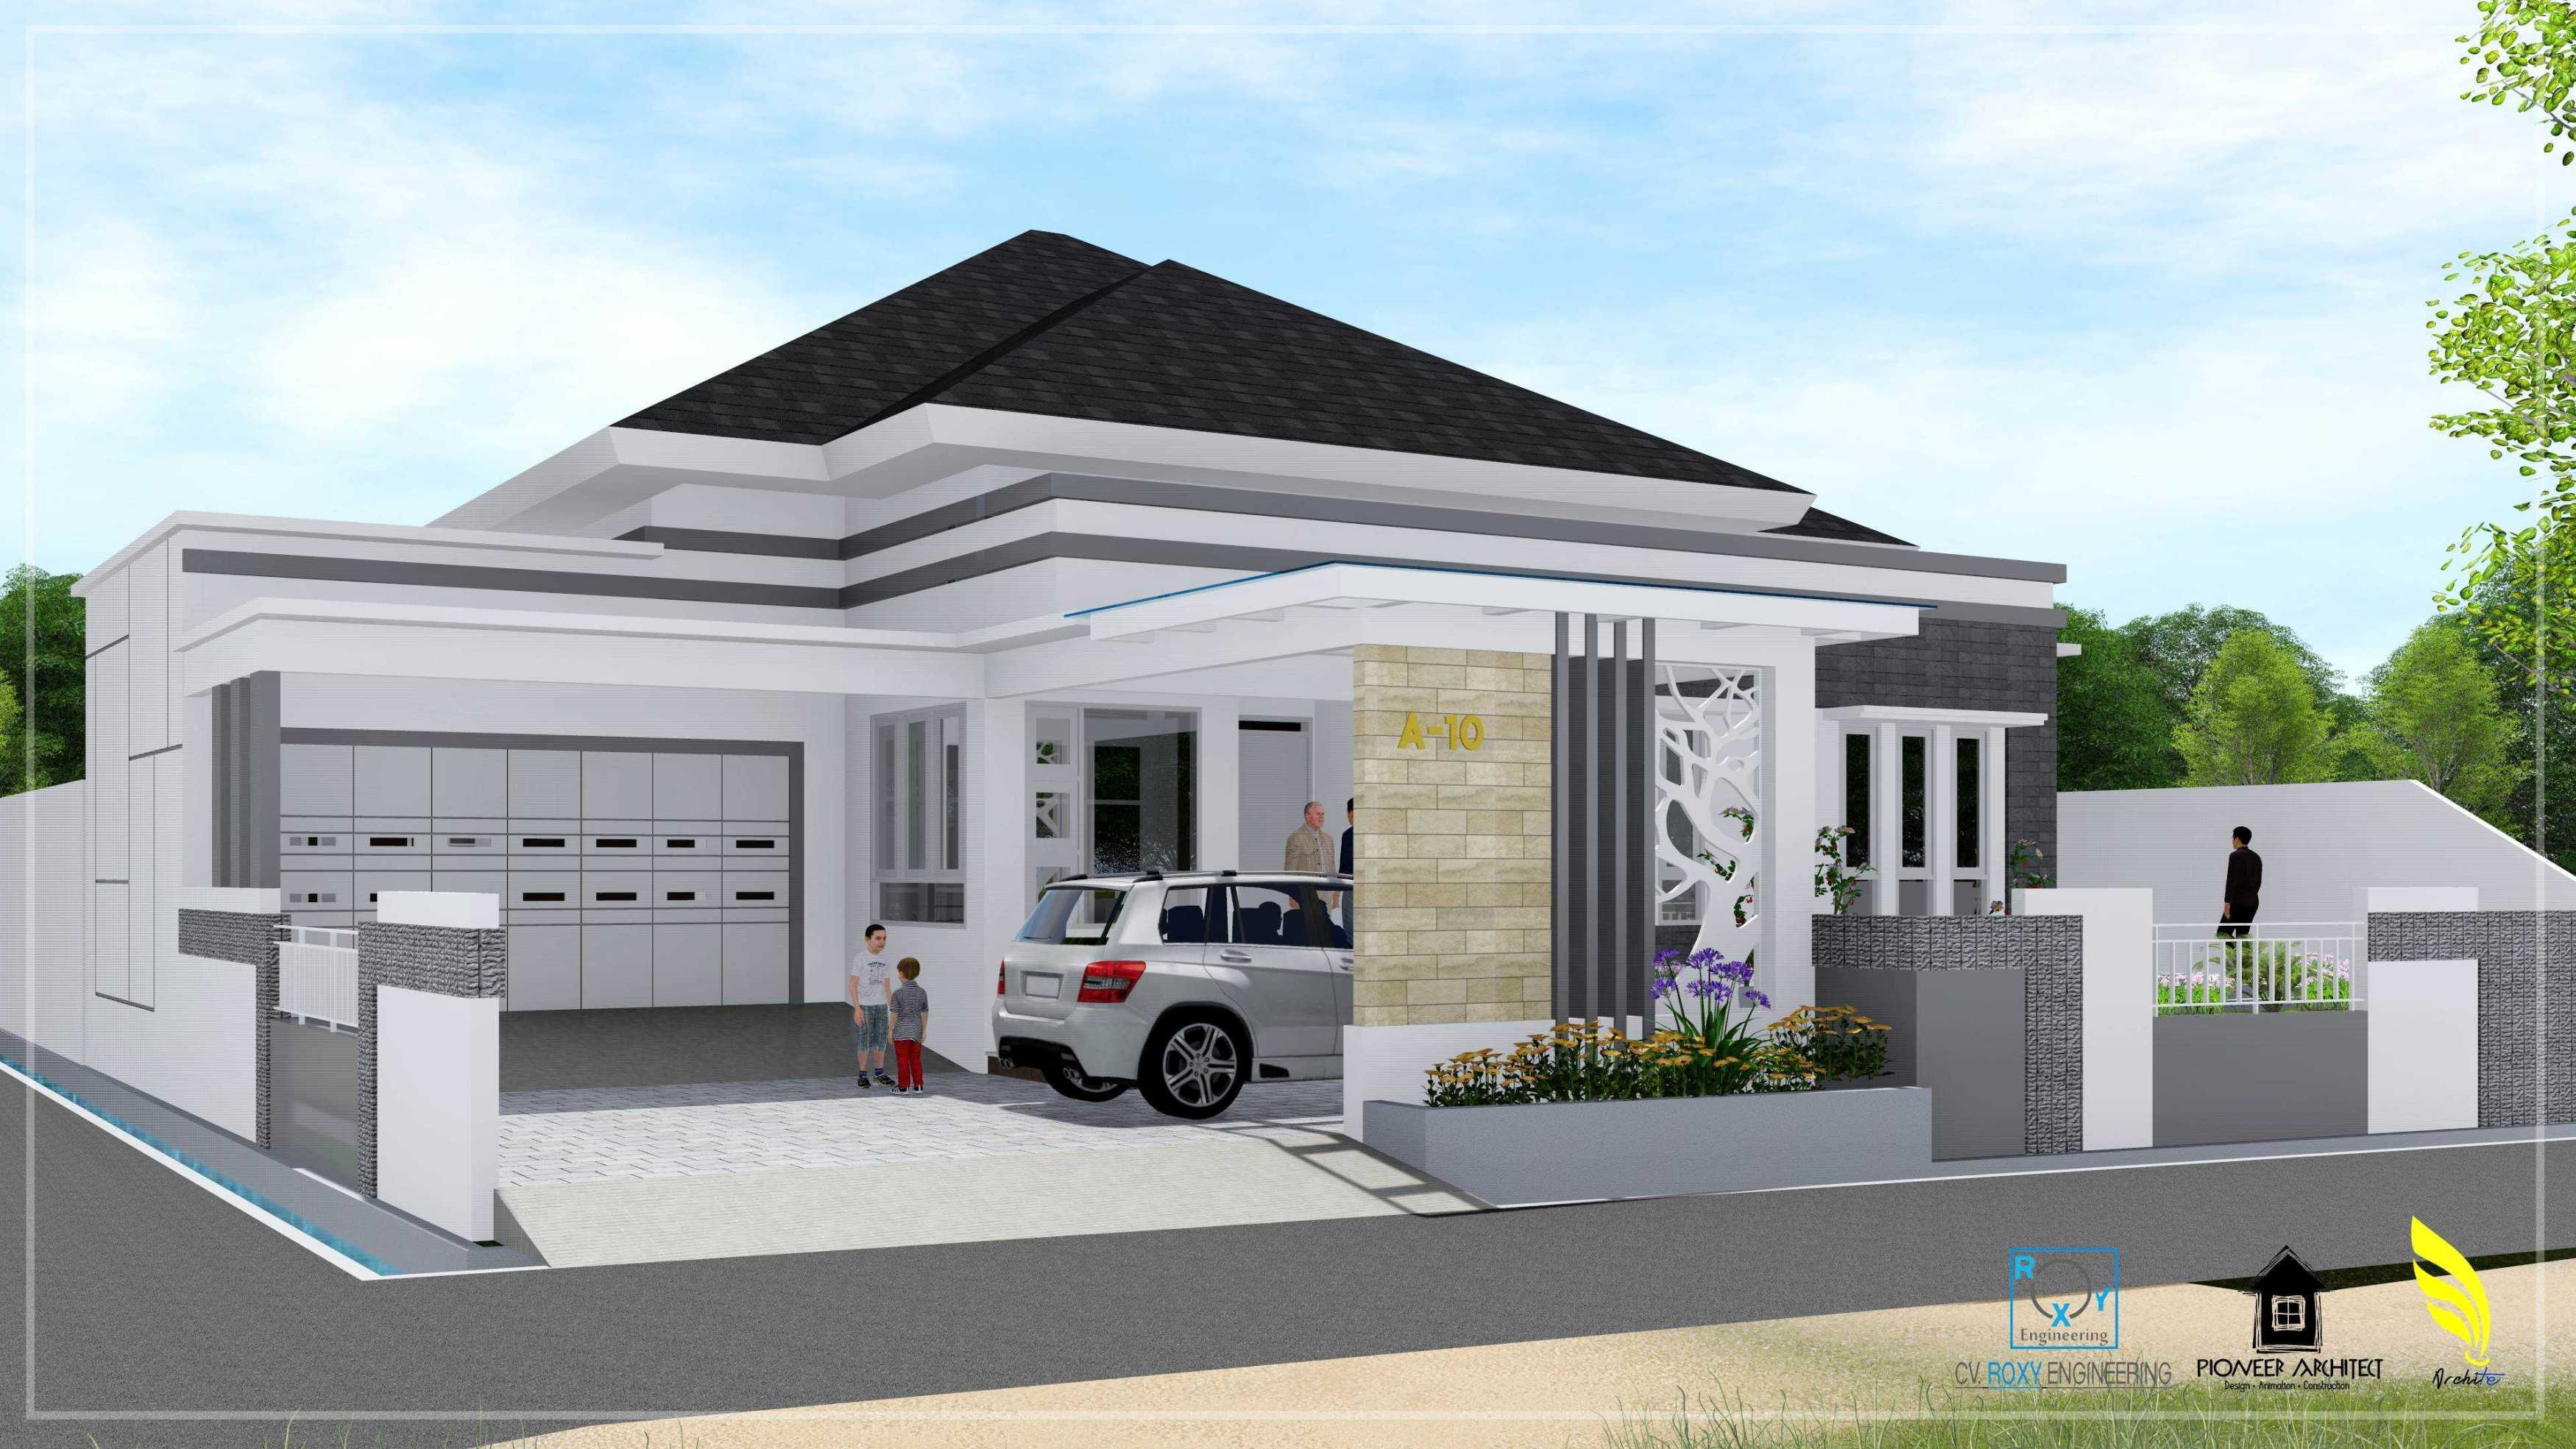 Pionner Architect H House Banda Aceh, Kota Banda Aceh, Aceh, Indonesia Banda Aceh, Kota Banda Aceh, Aceh, Indonesia Exterior View Modern  43246